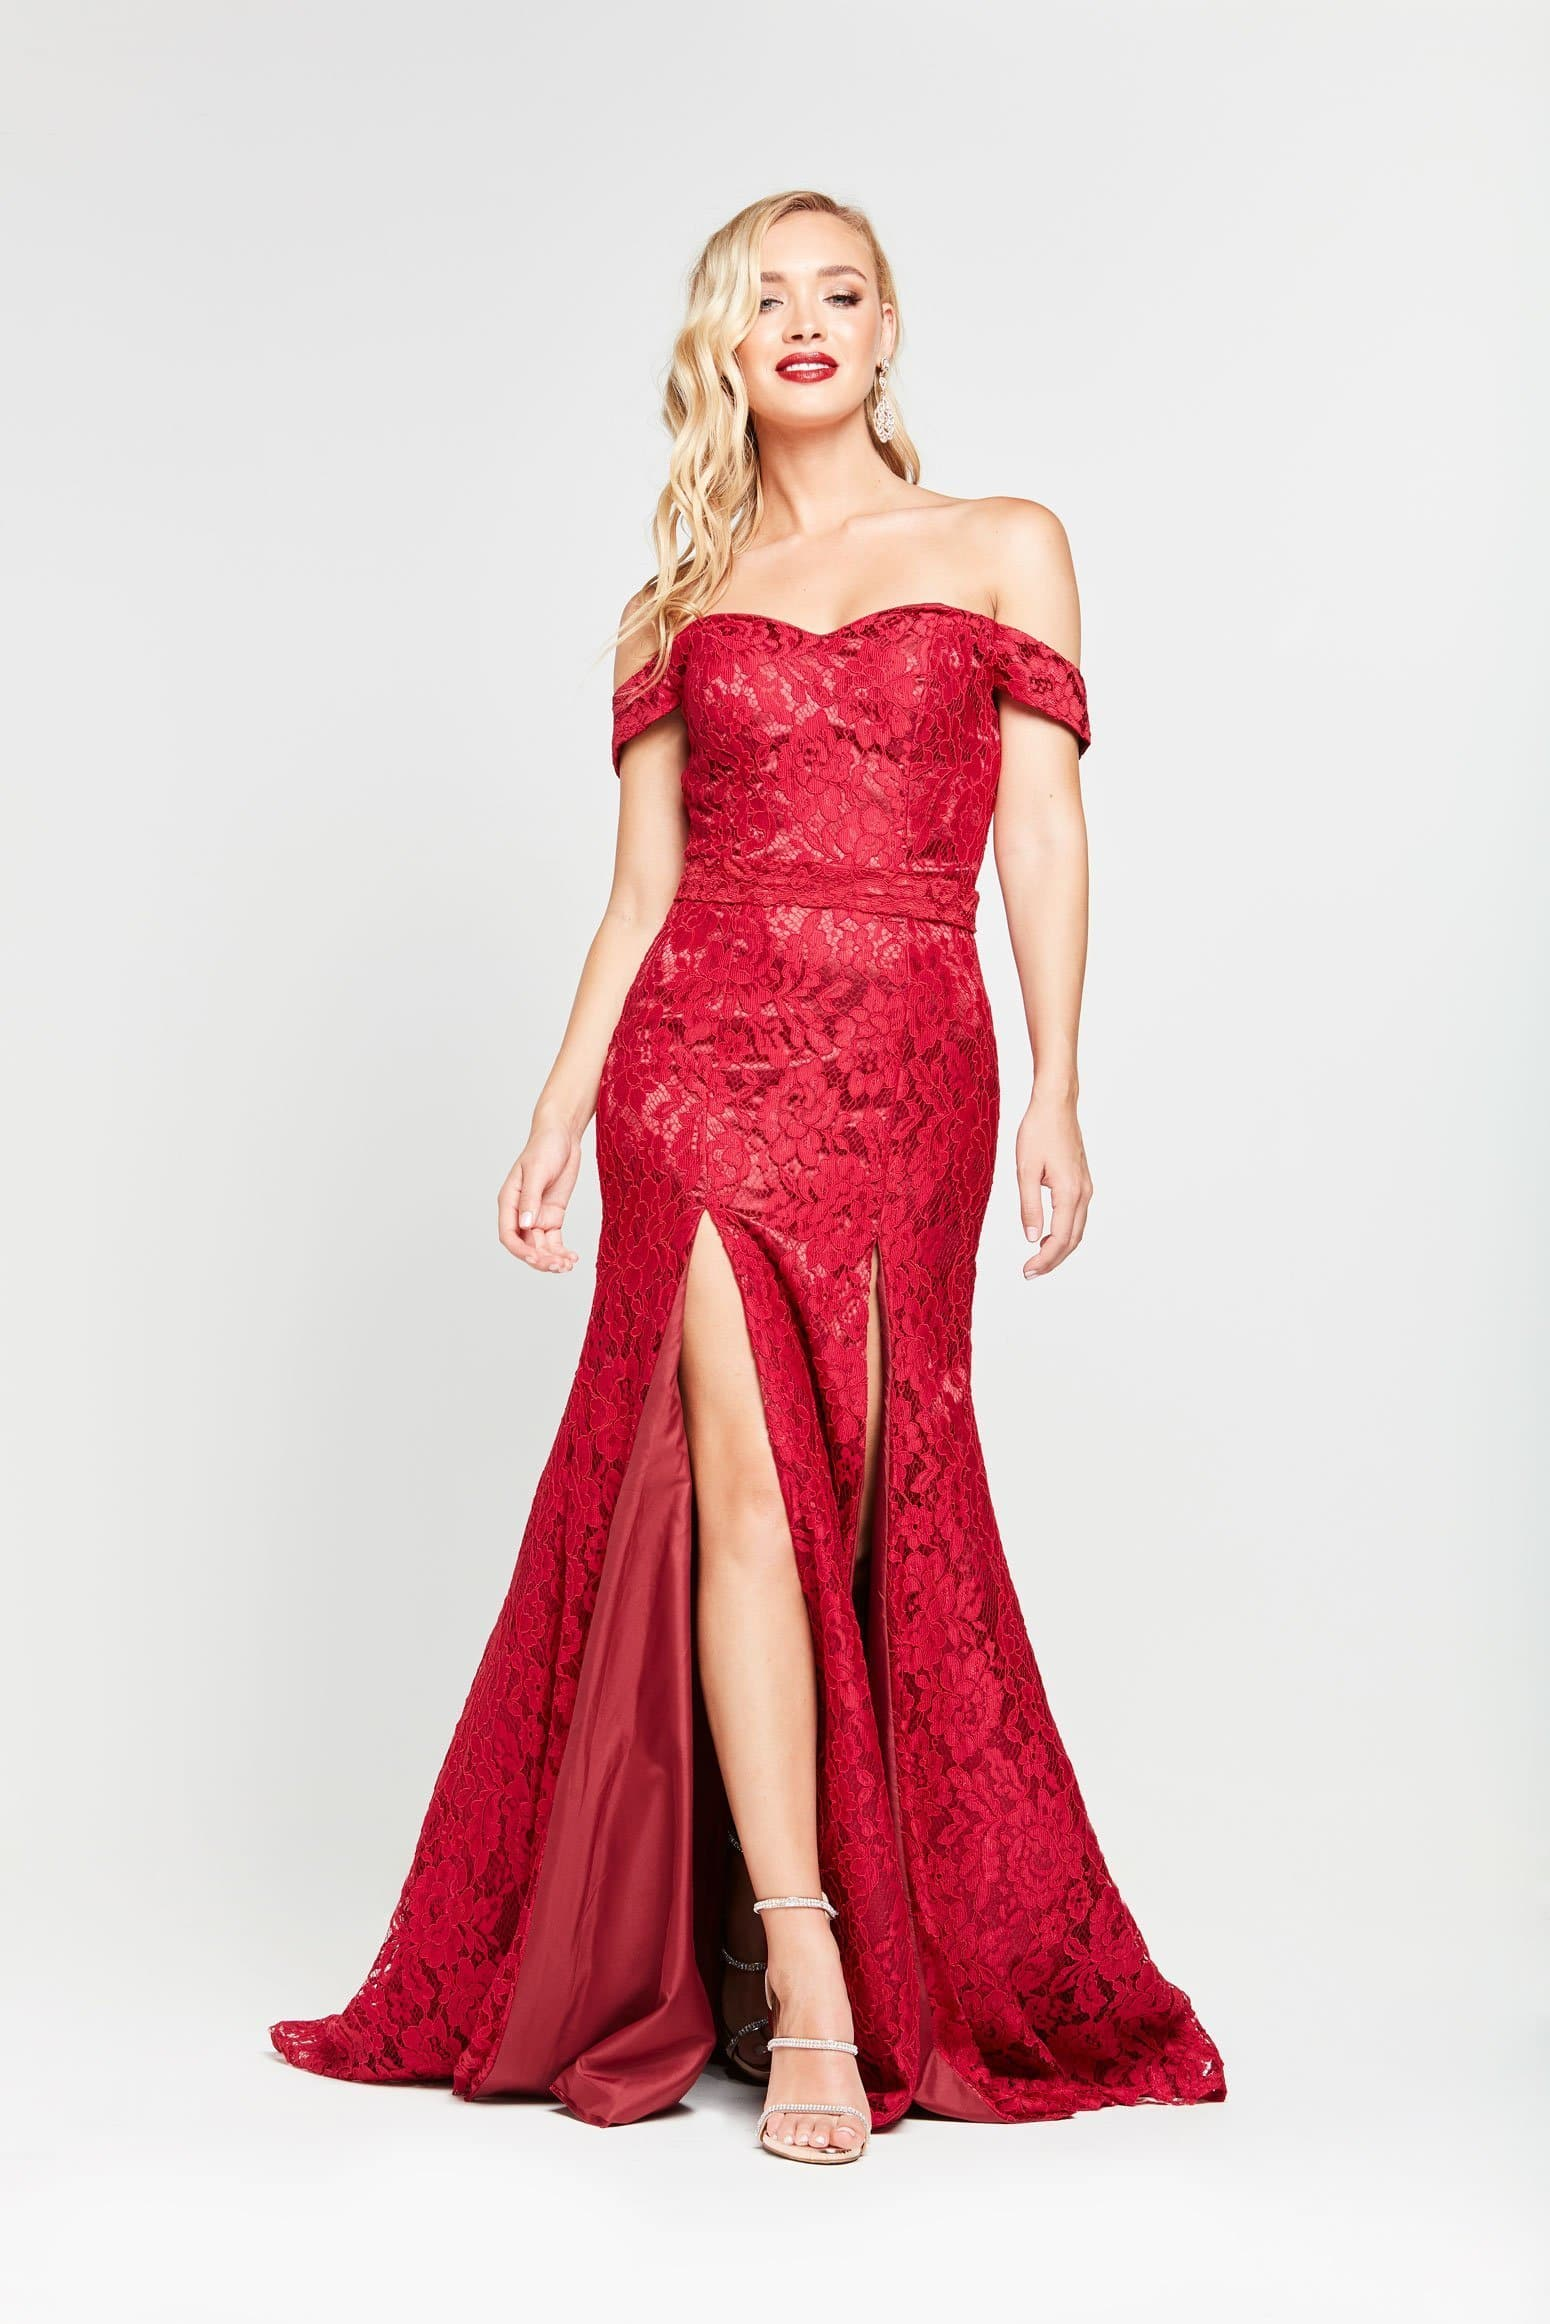 A&N Dahlia- Deep Red Lace Off Shoulder Gown with Two Splits